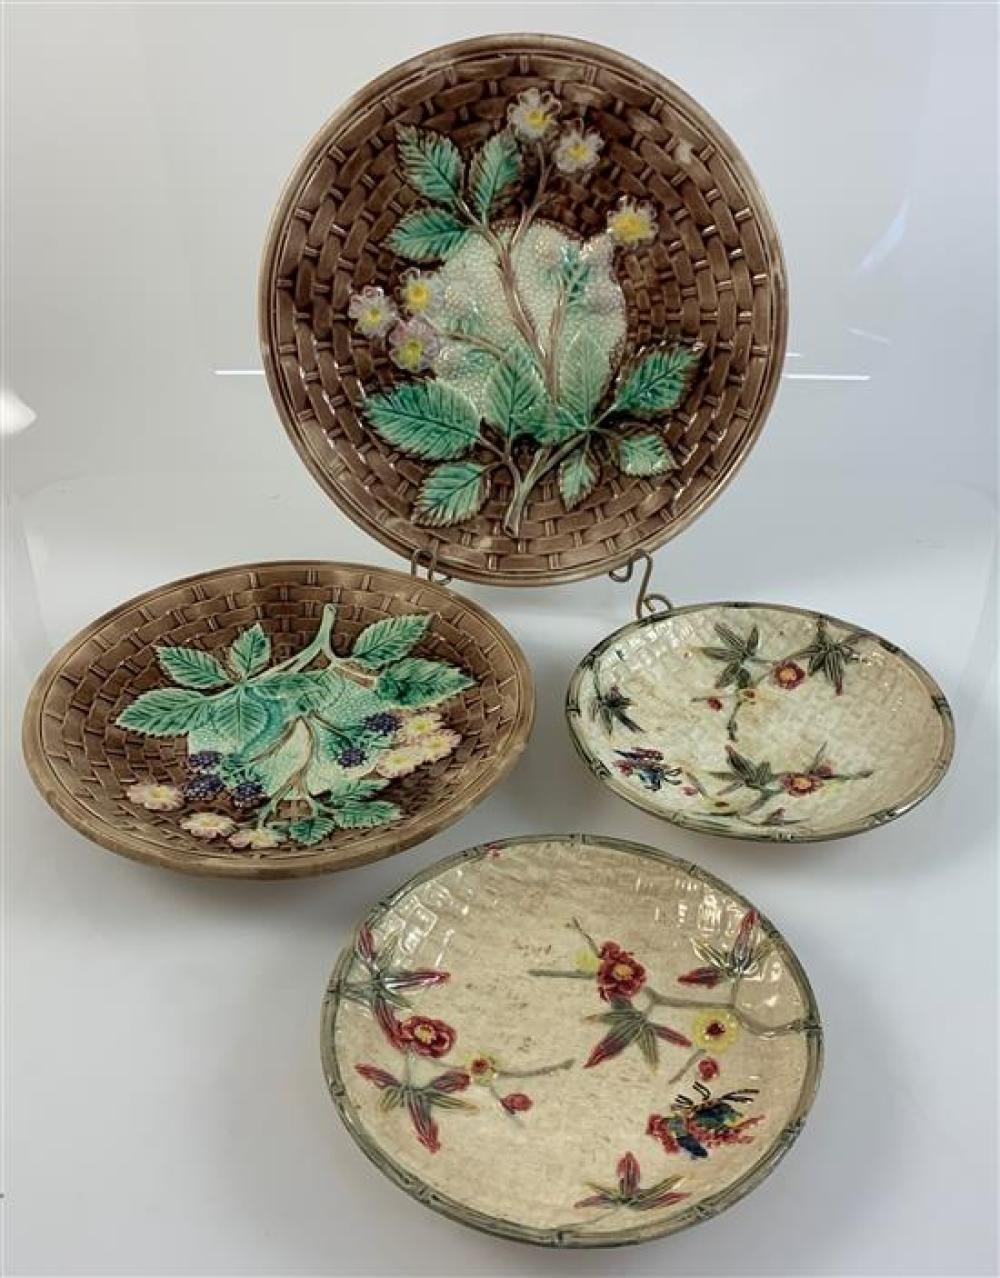 """4 MAJOLICA BASKETWEAVE PATTERN PLATES - (2) 6¼"""" CREAM COLORED WITH FLORAL DECOR, 8"""" AND 9¼"""" BROWN WITH LEAVES, BERRIES, FLOWERS"""